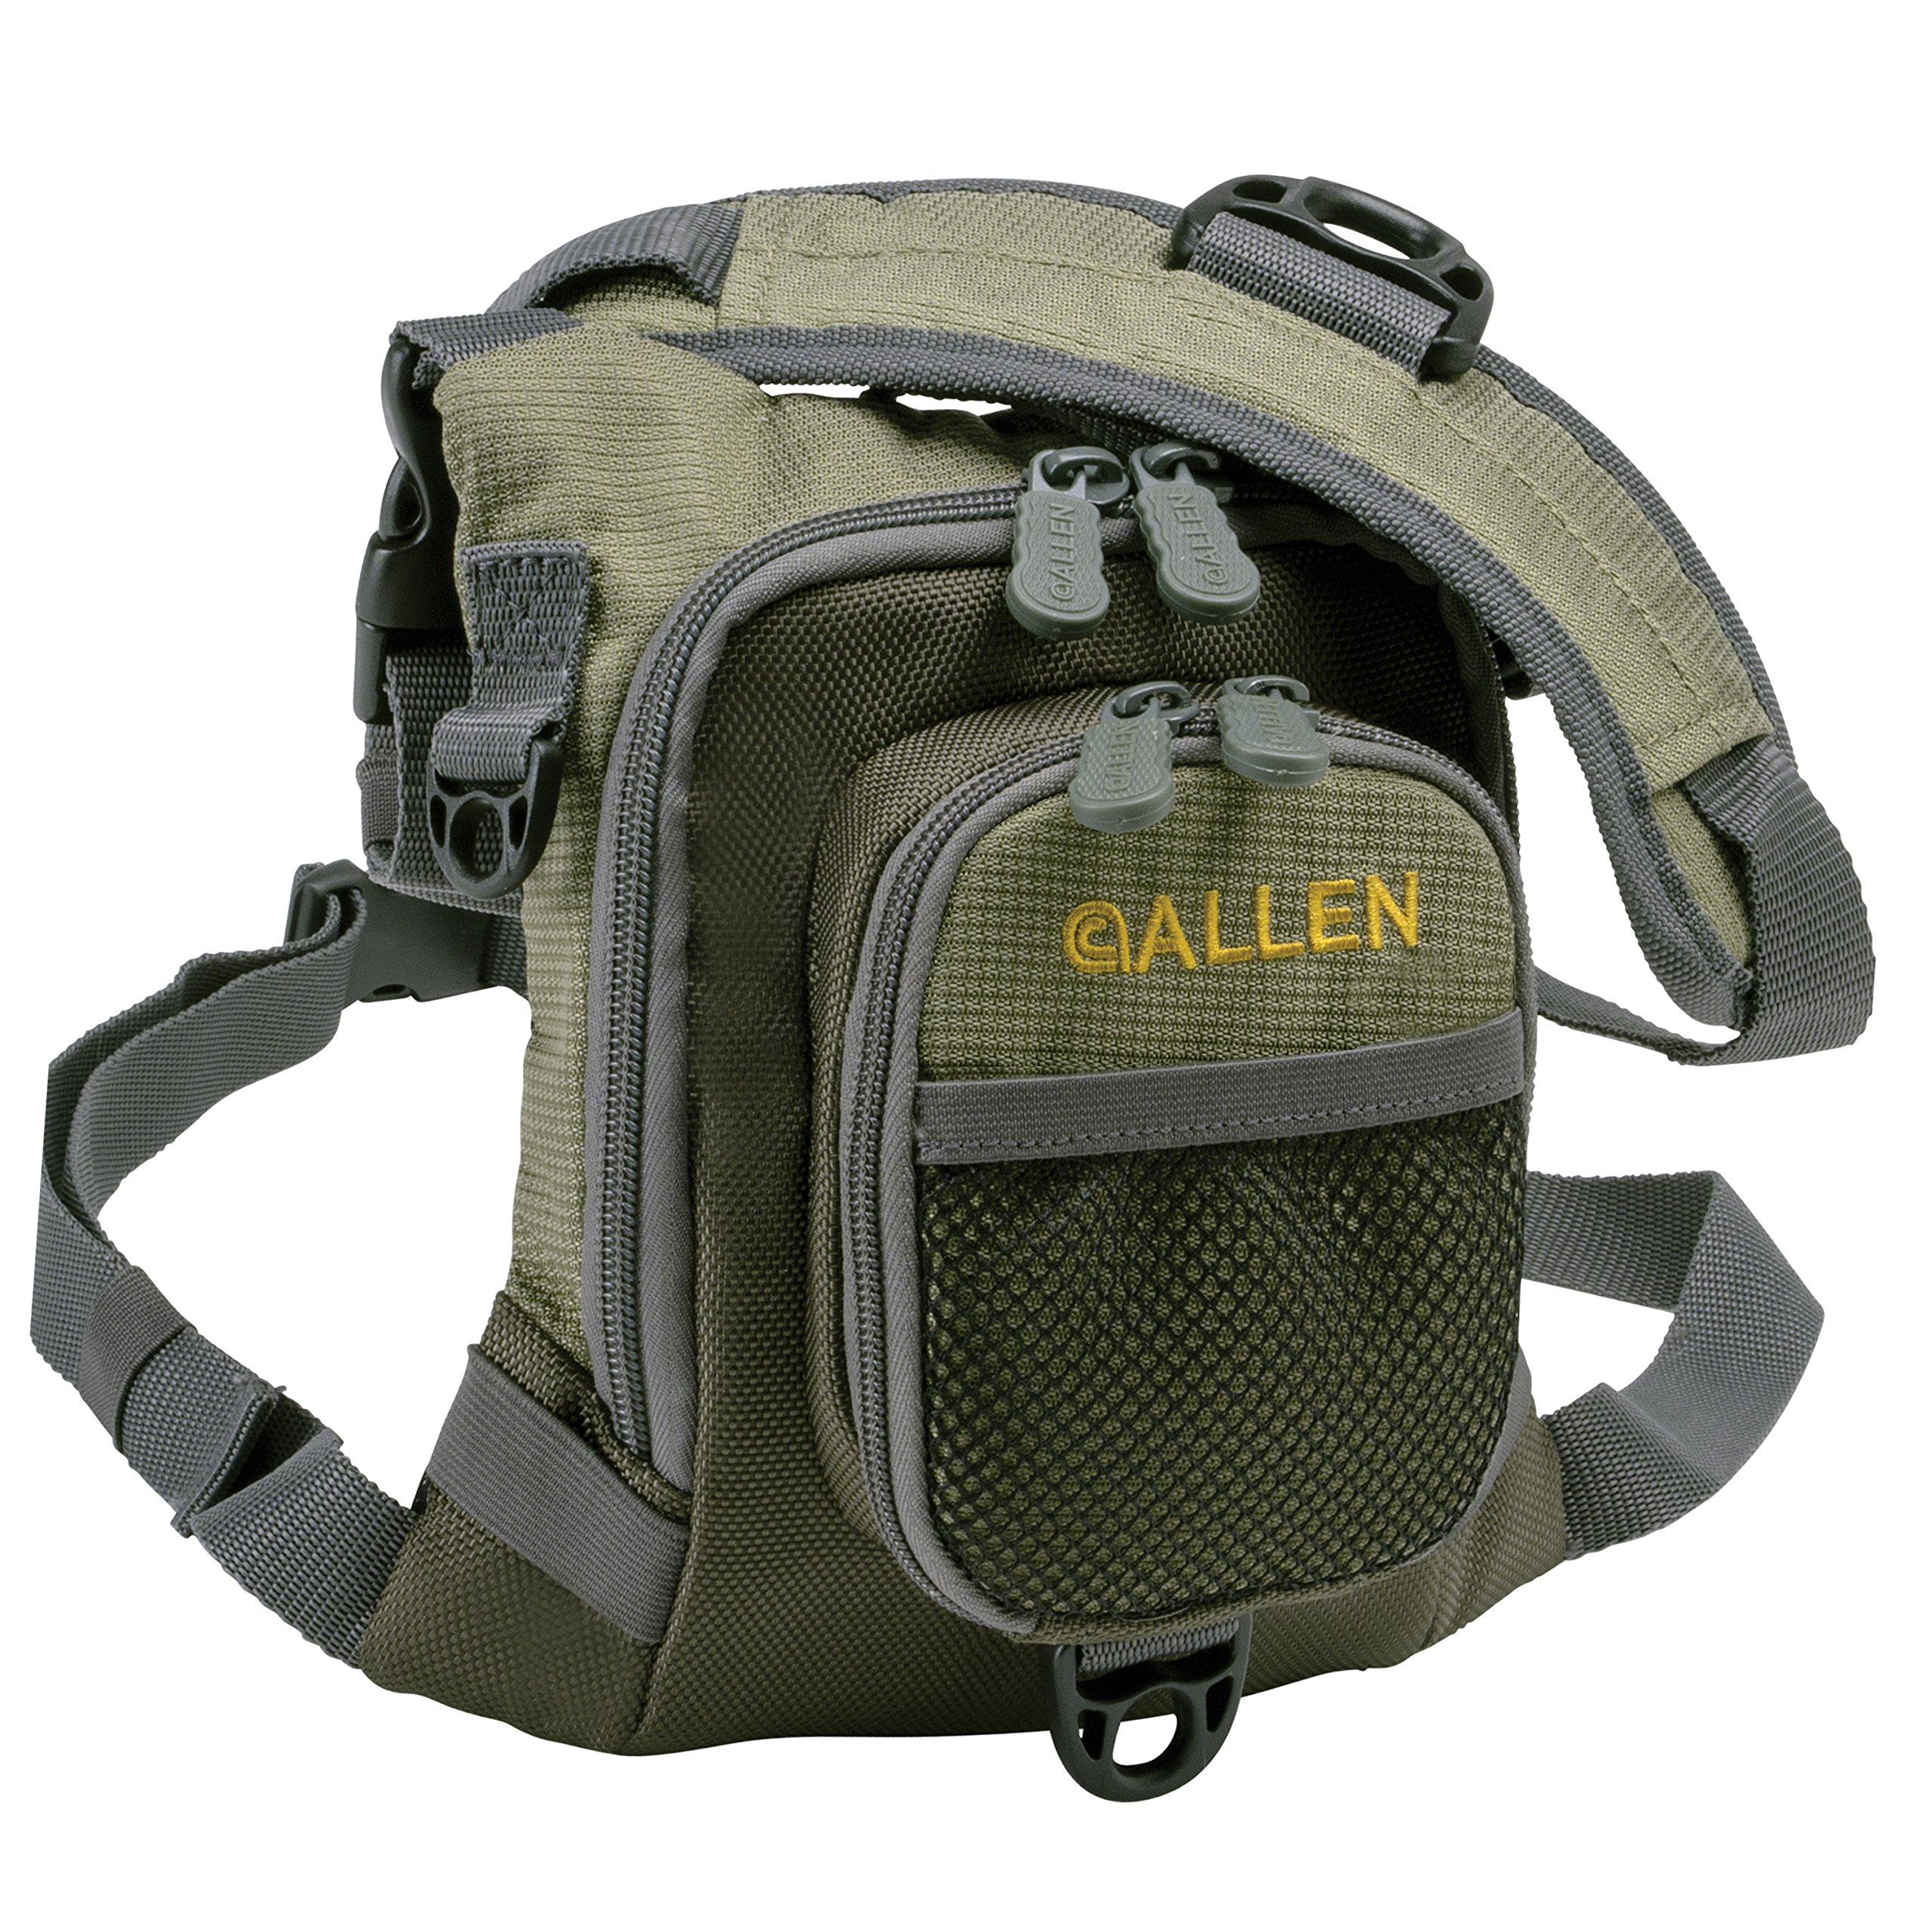 Allen Company 6336 Bear Creek Micro Chest Pack